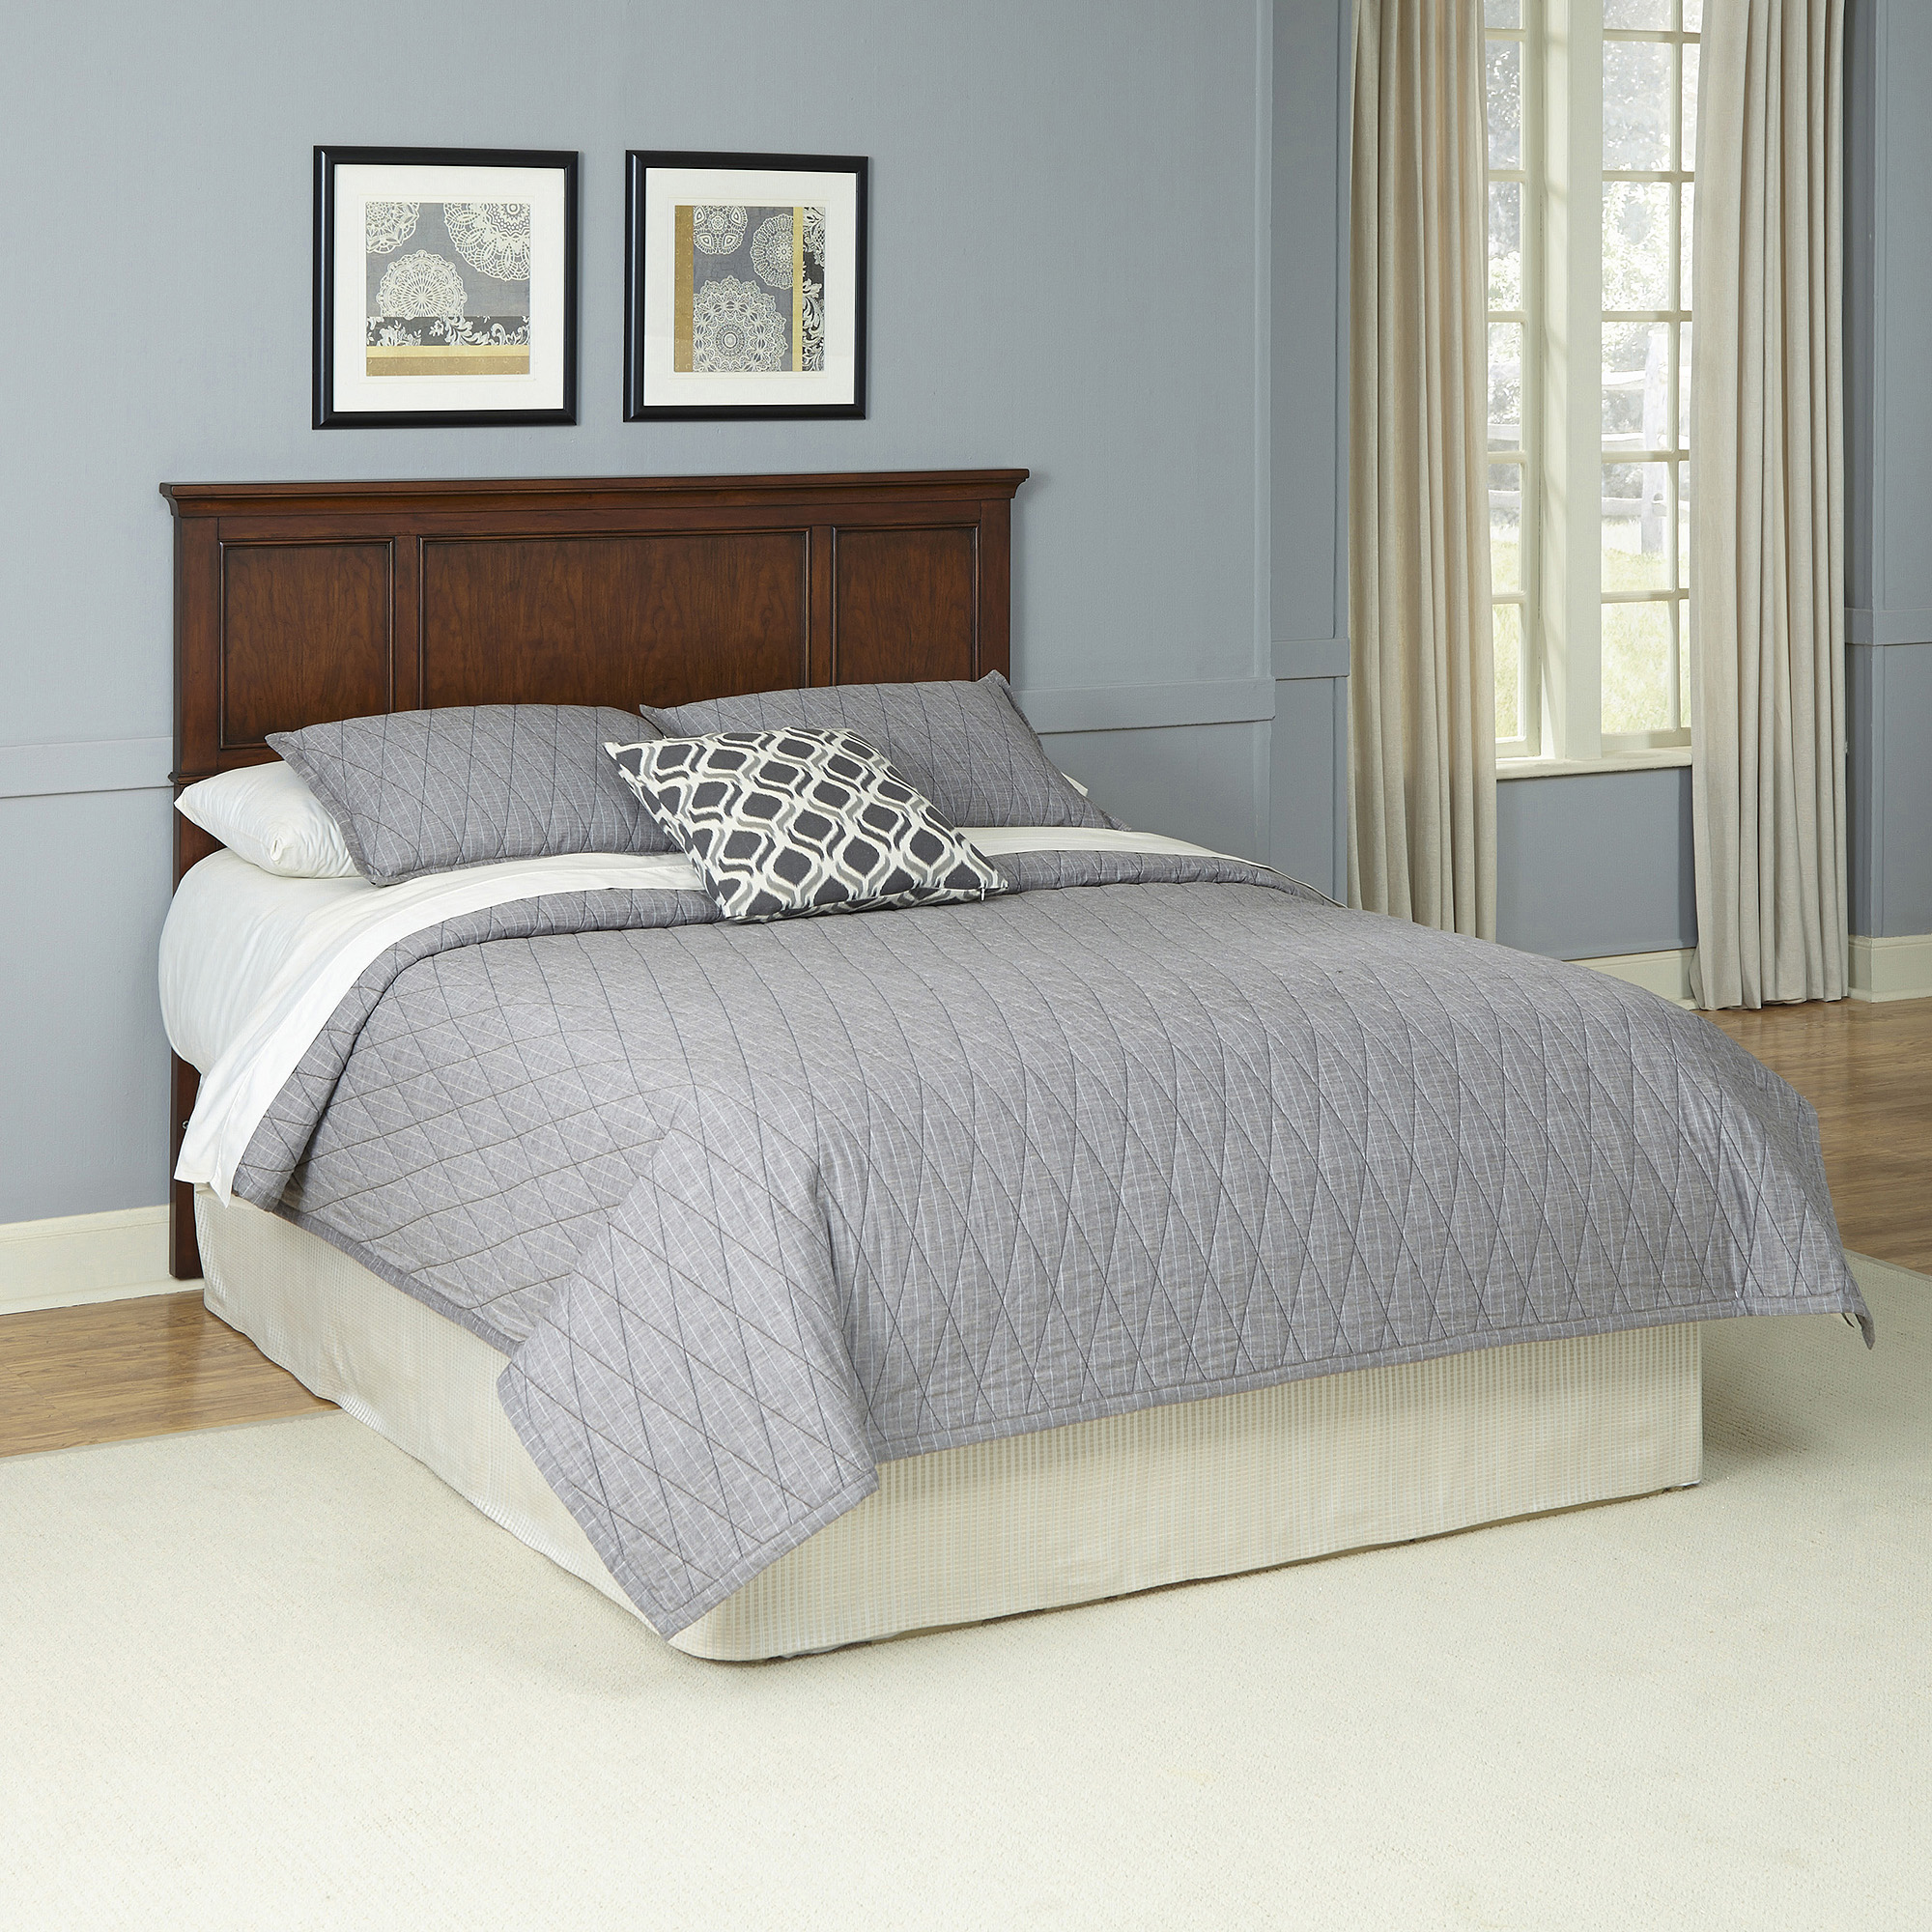 Home Styles Chesapeake King/California King Headboard